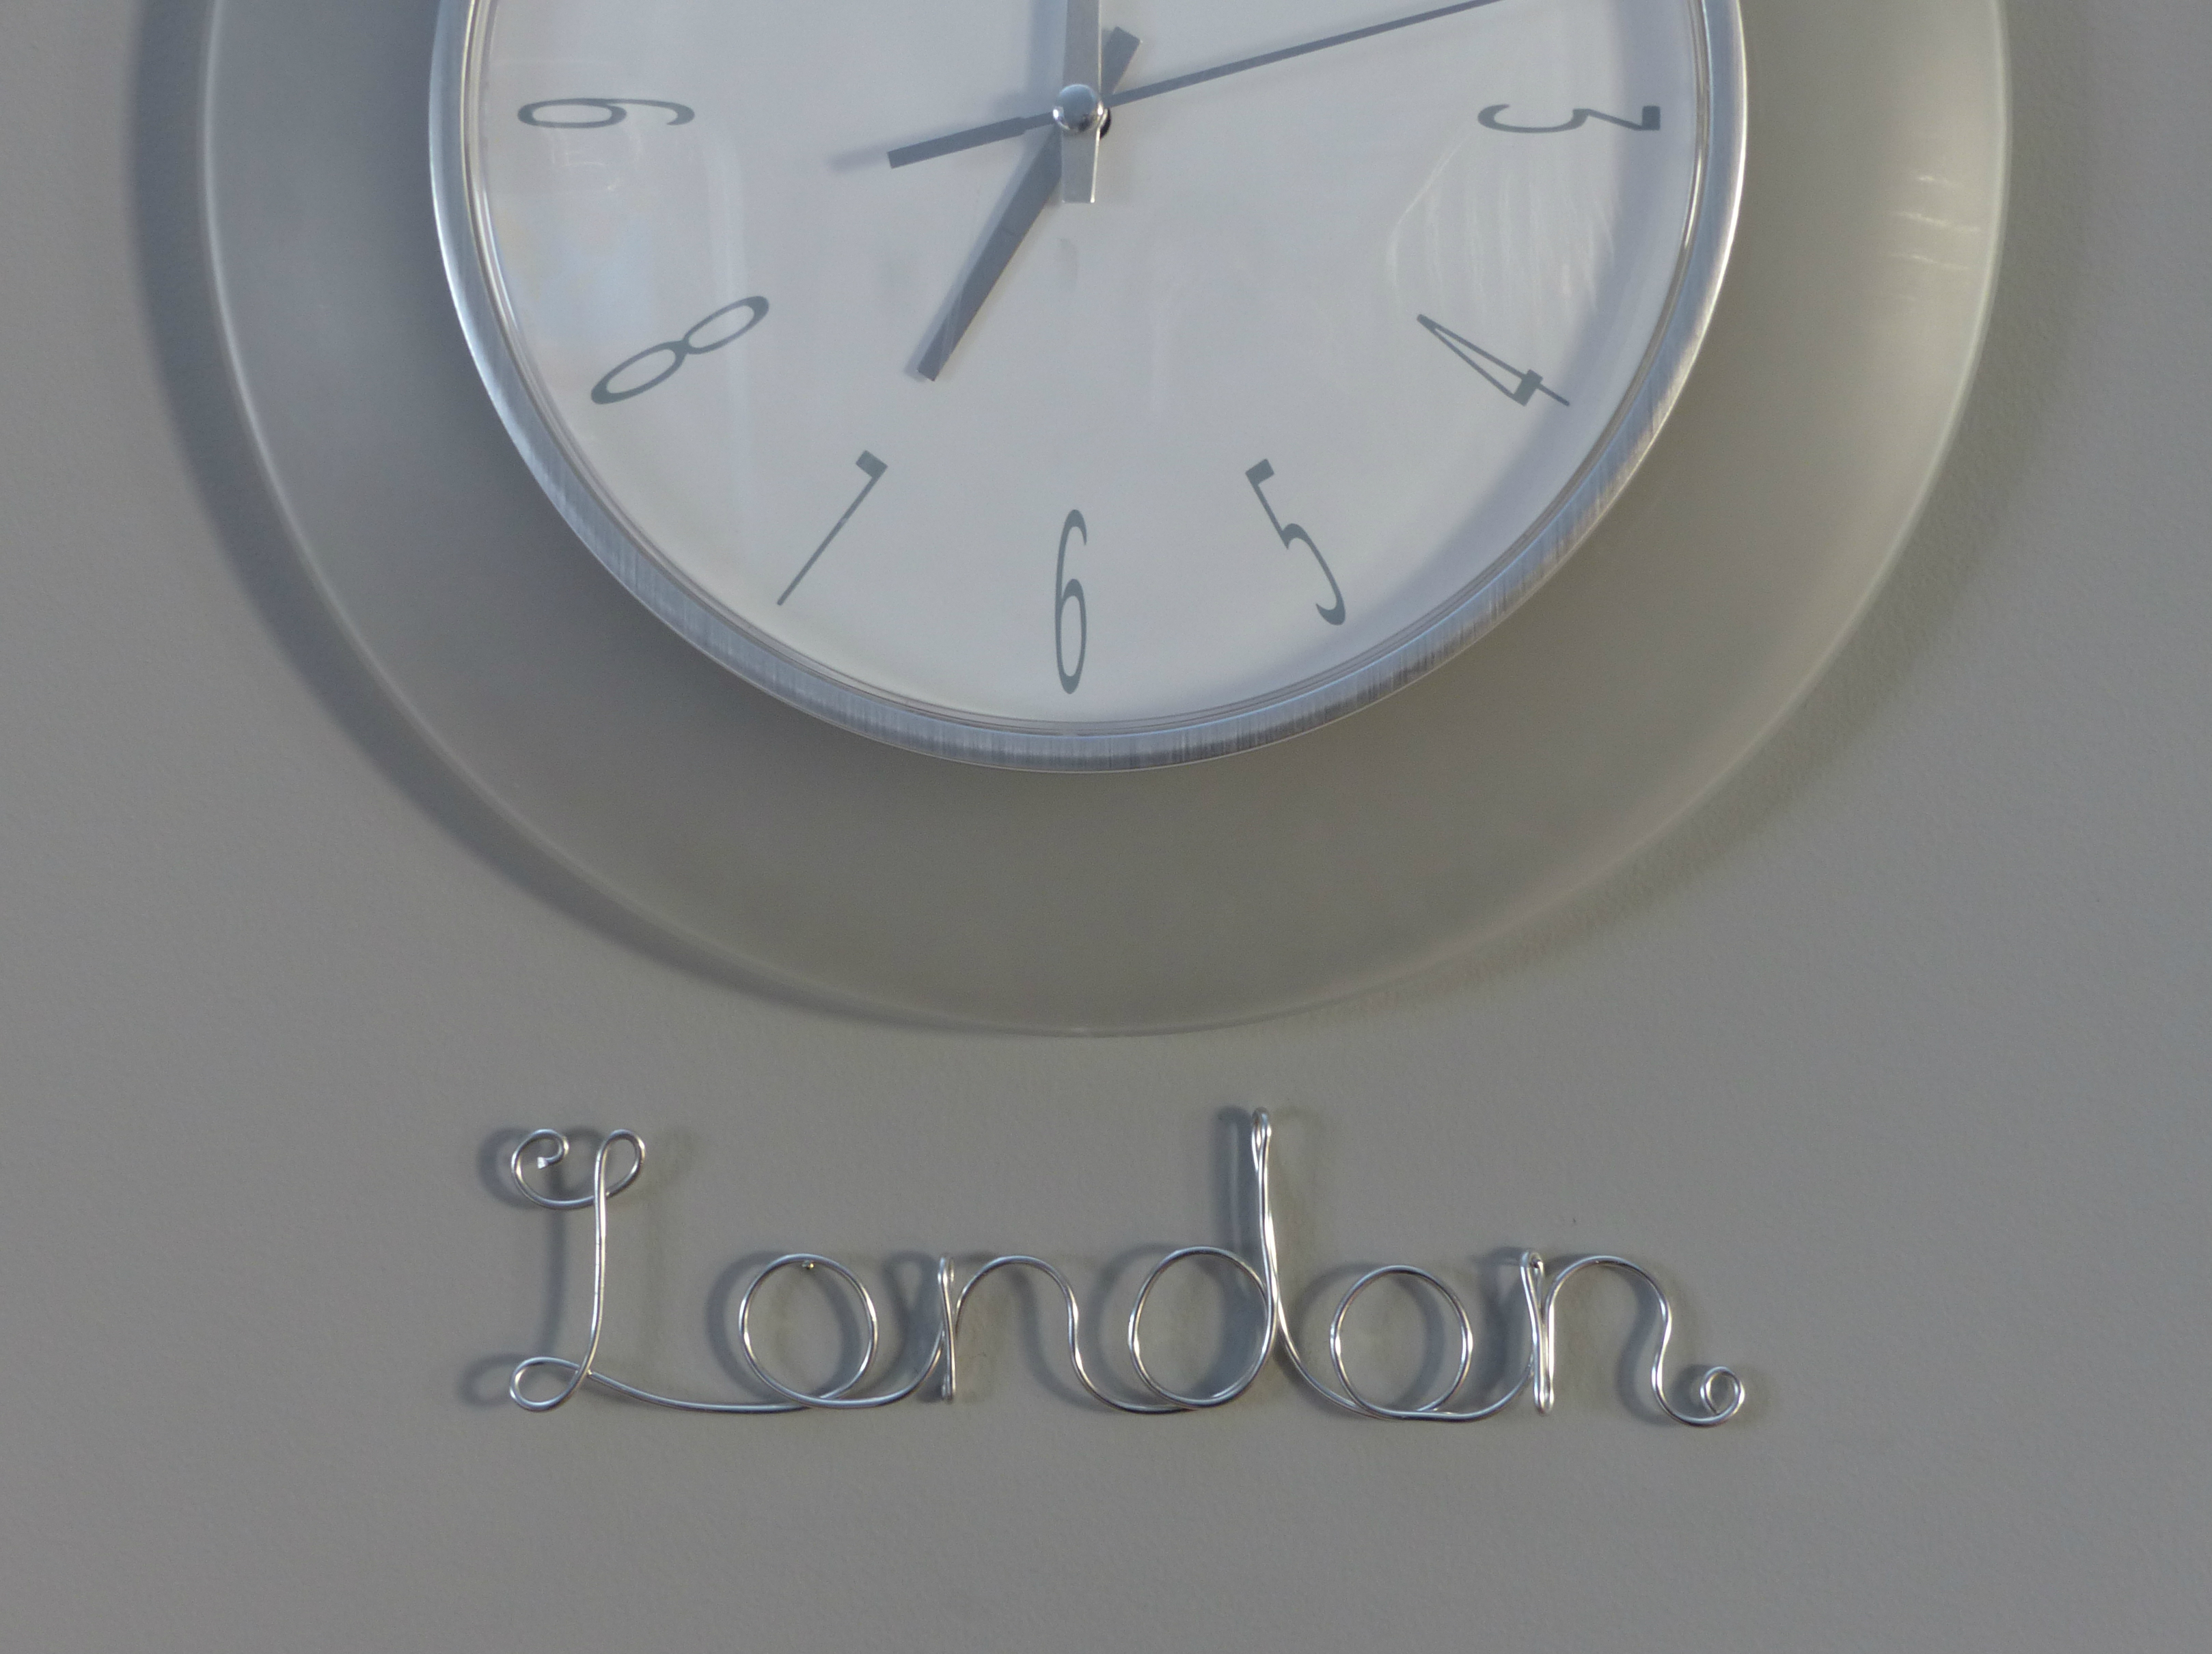 London Time Zone Label